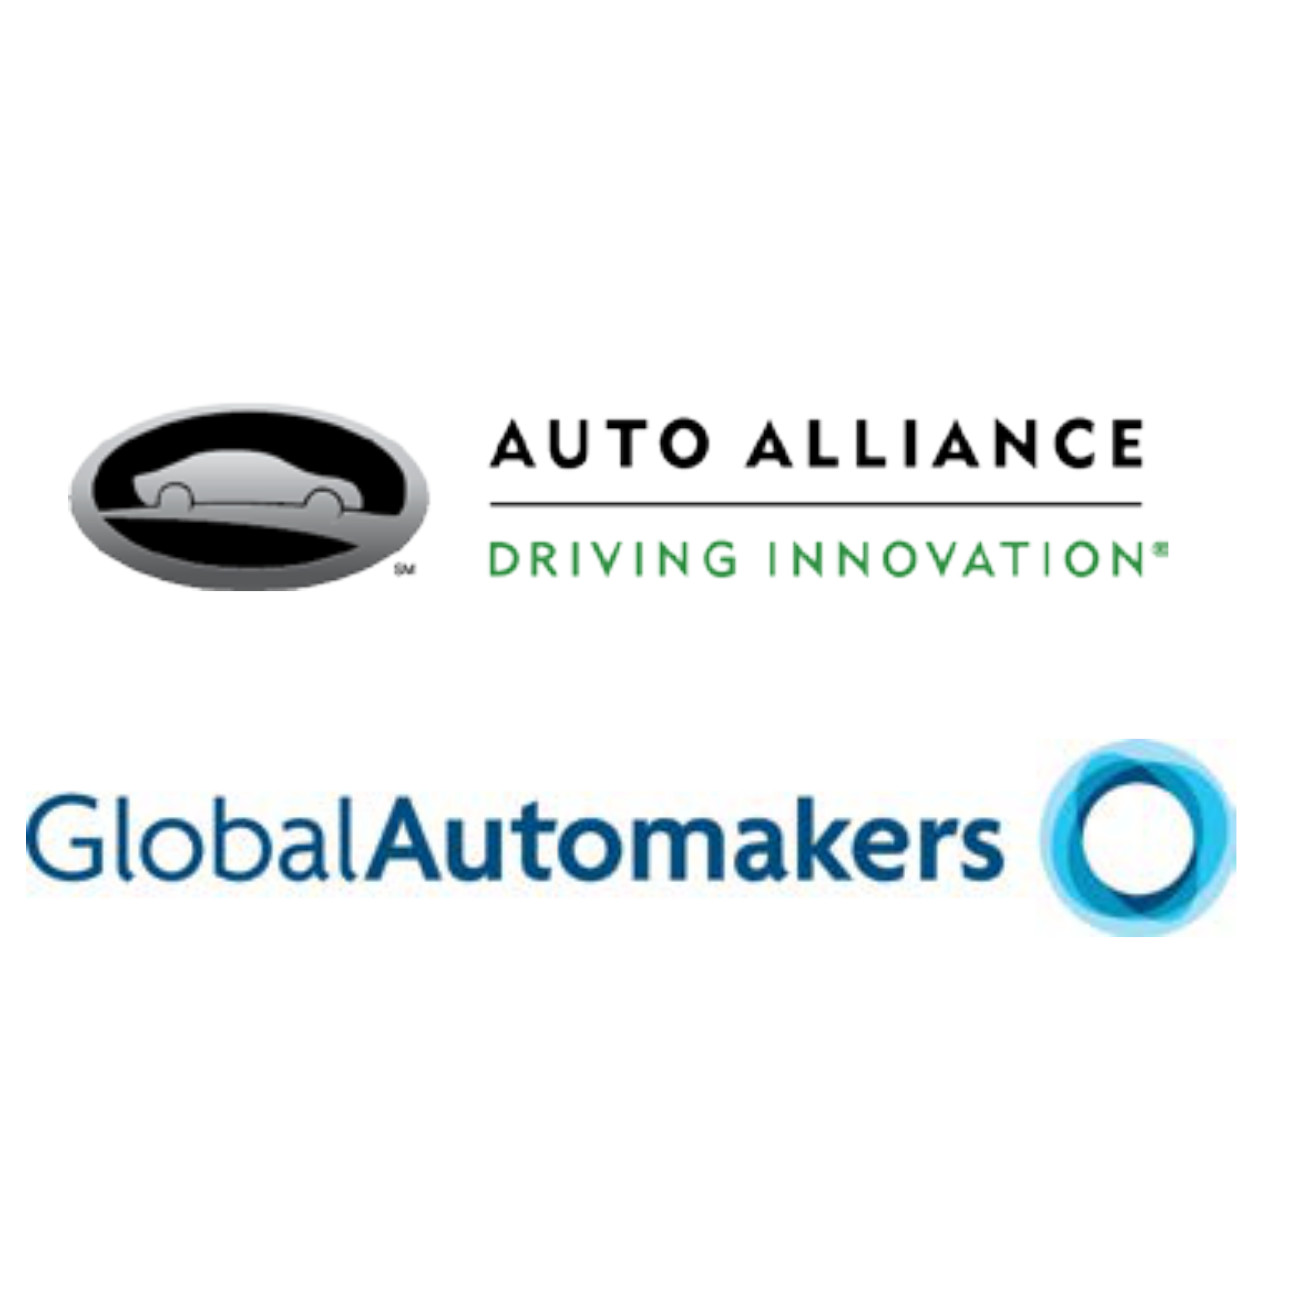 Alliance Of Automobile Manufacturers >> Oem Trade Groups Merge Into Alliance For Automotive